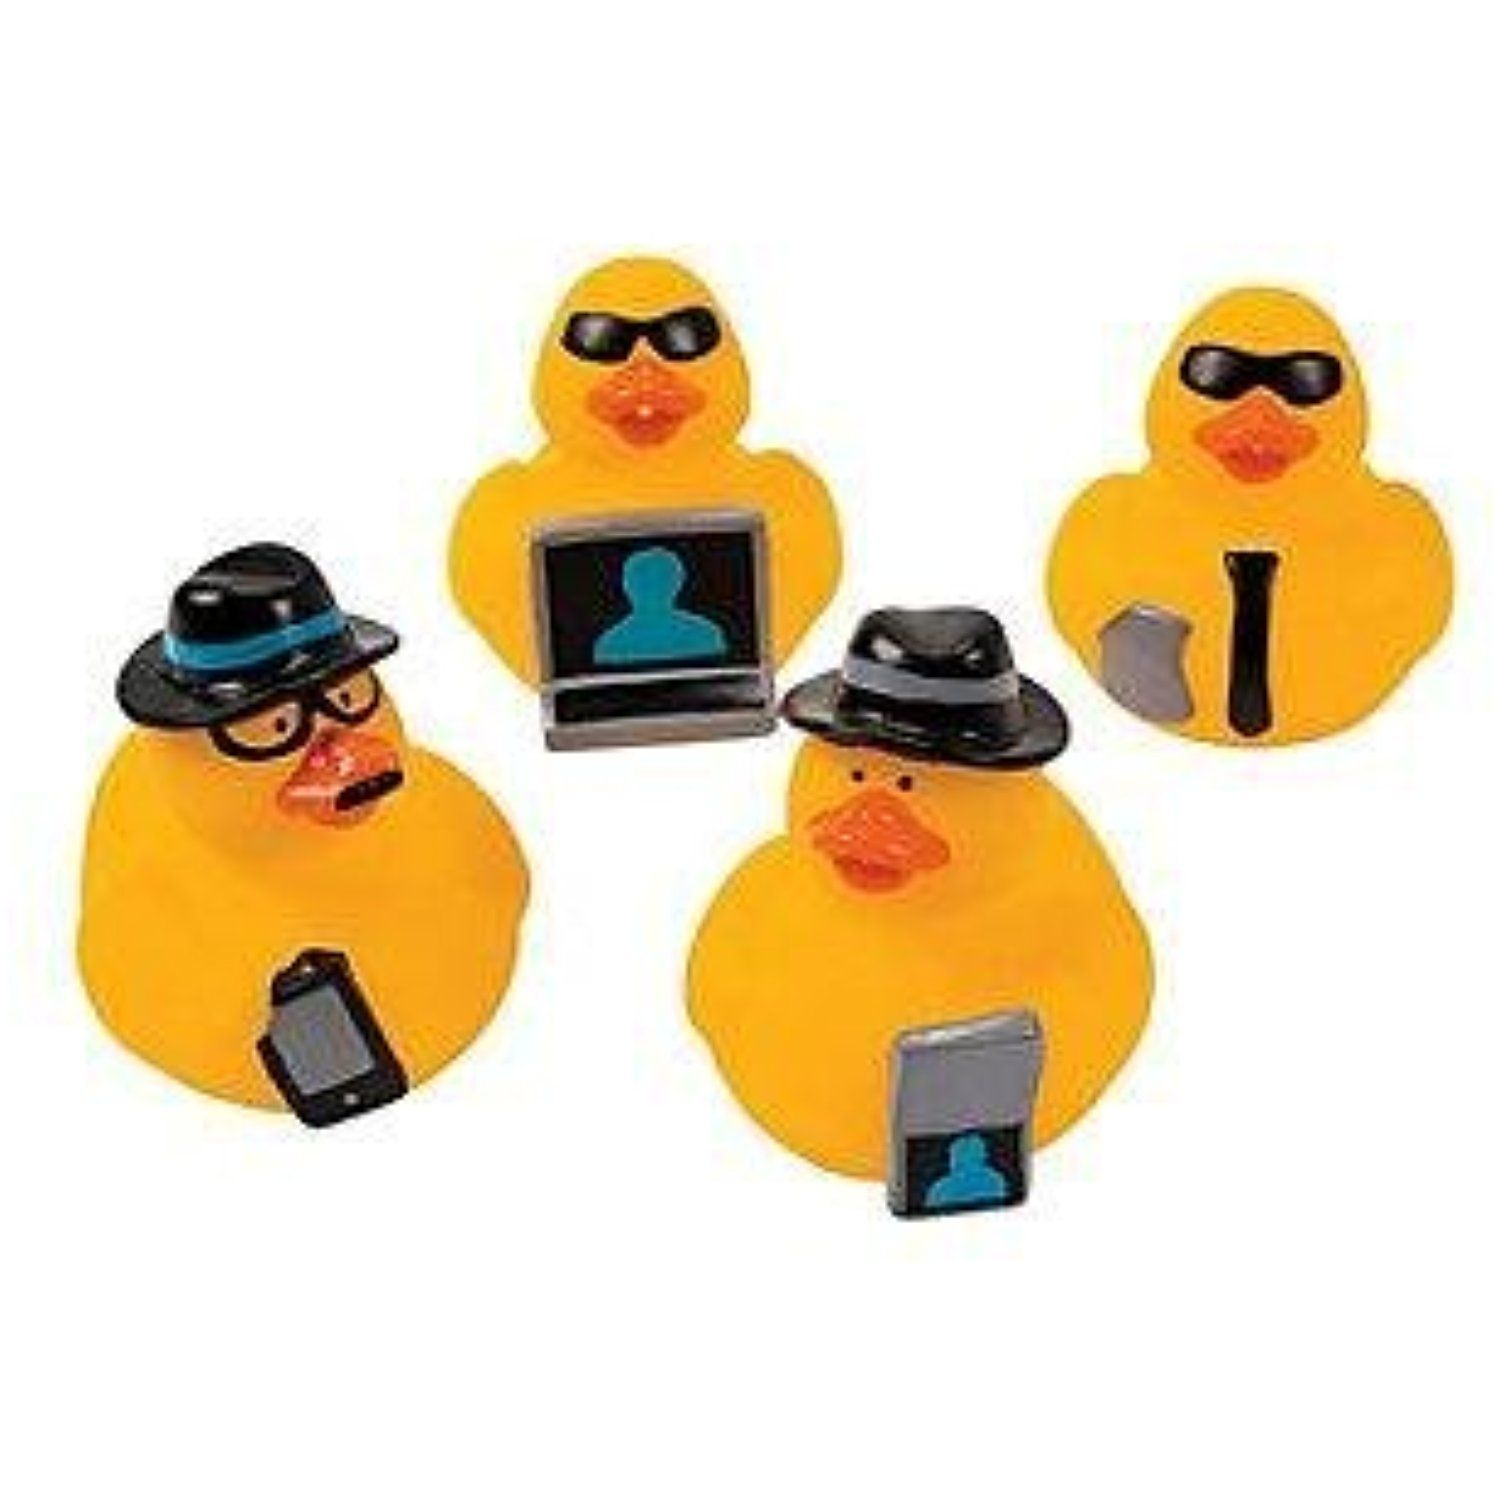 Cool Fun Secret Agent Rubber Duckies You can